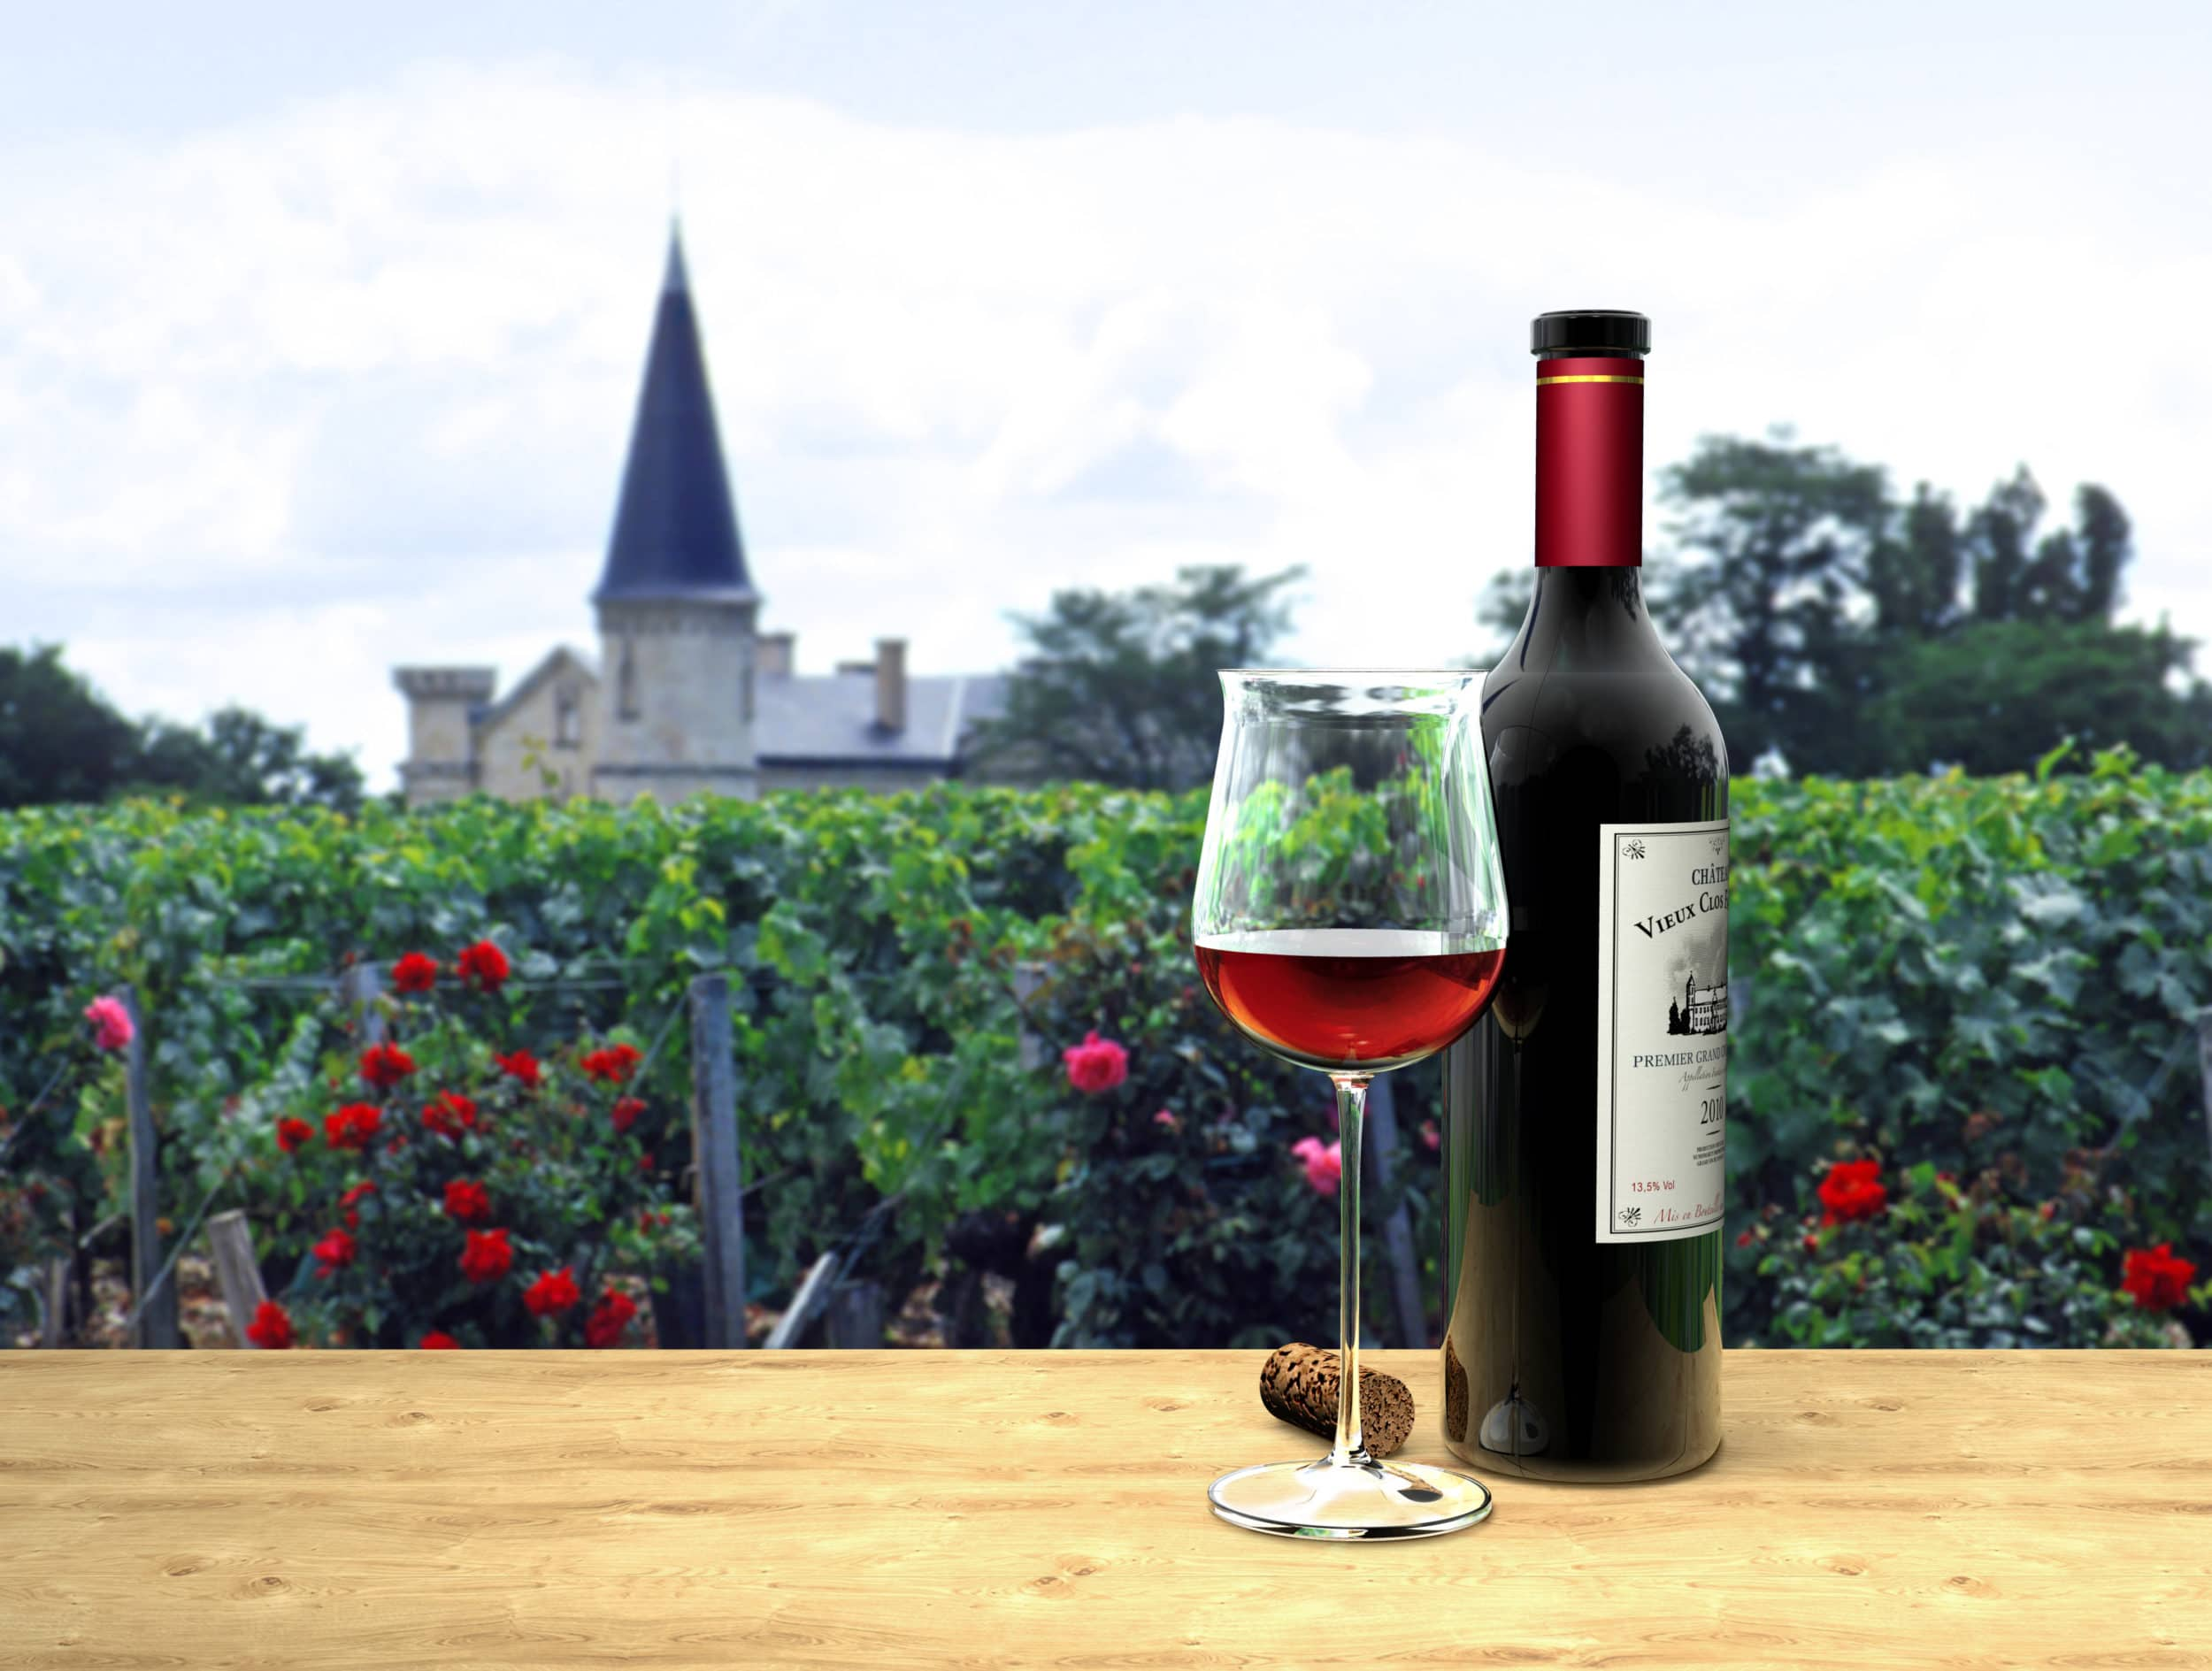 French wine regions: A glass of bordeaux red wine in France.